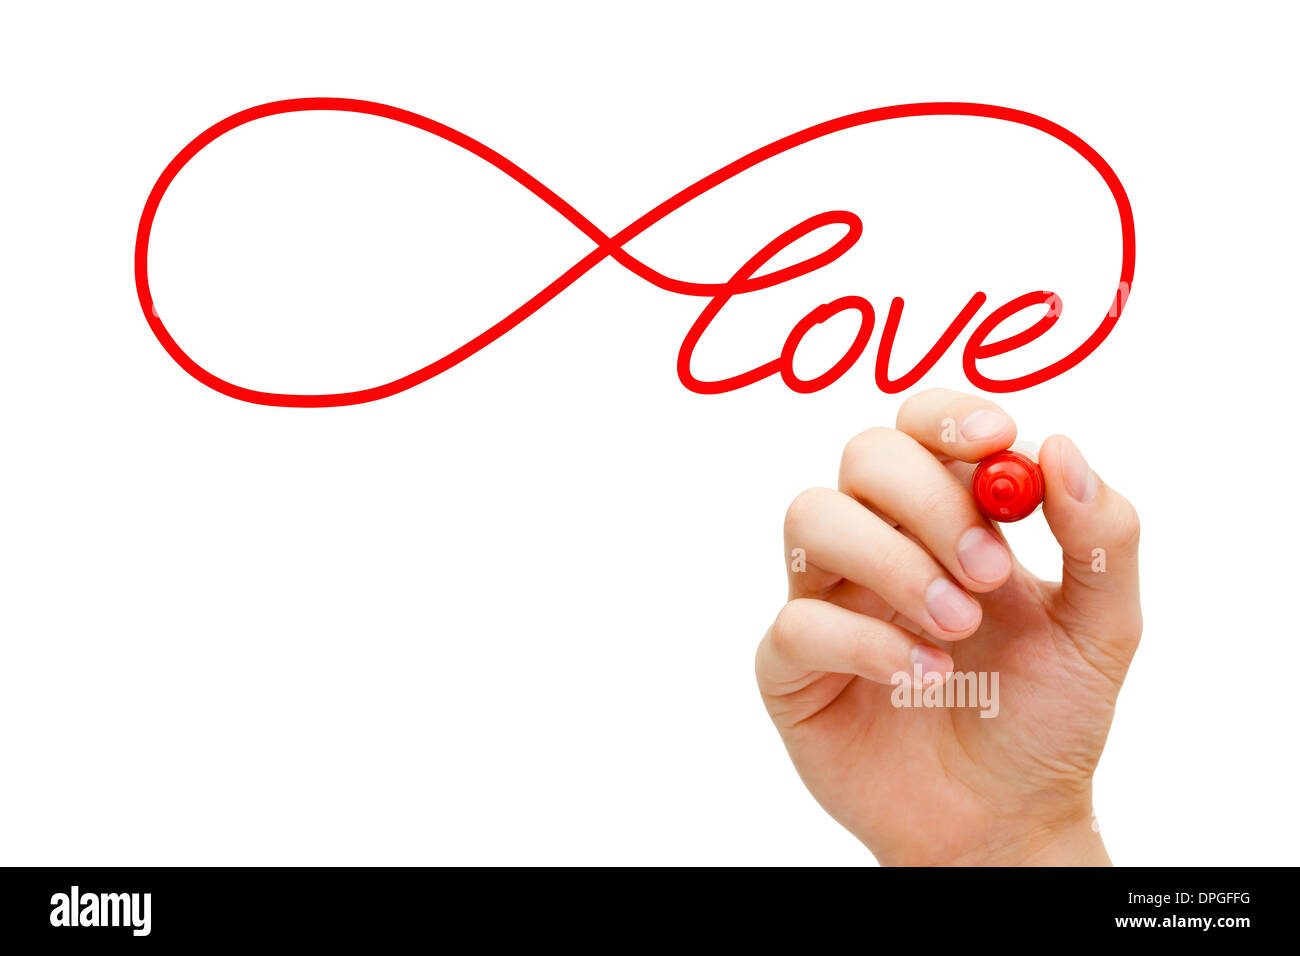 Hand Sketching Infinity Love Symbol With Red Marker On Transparent